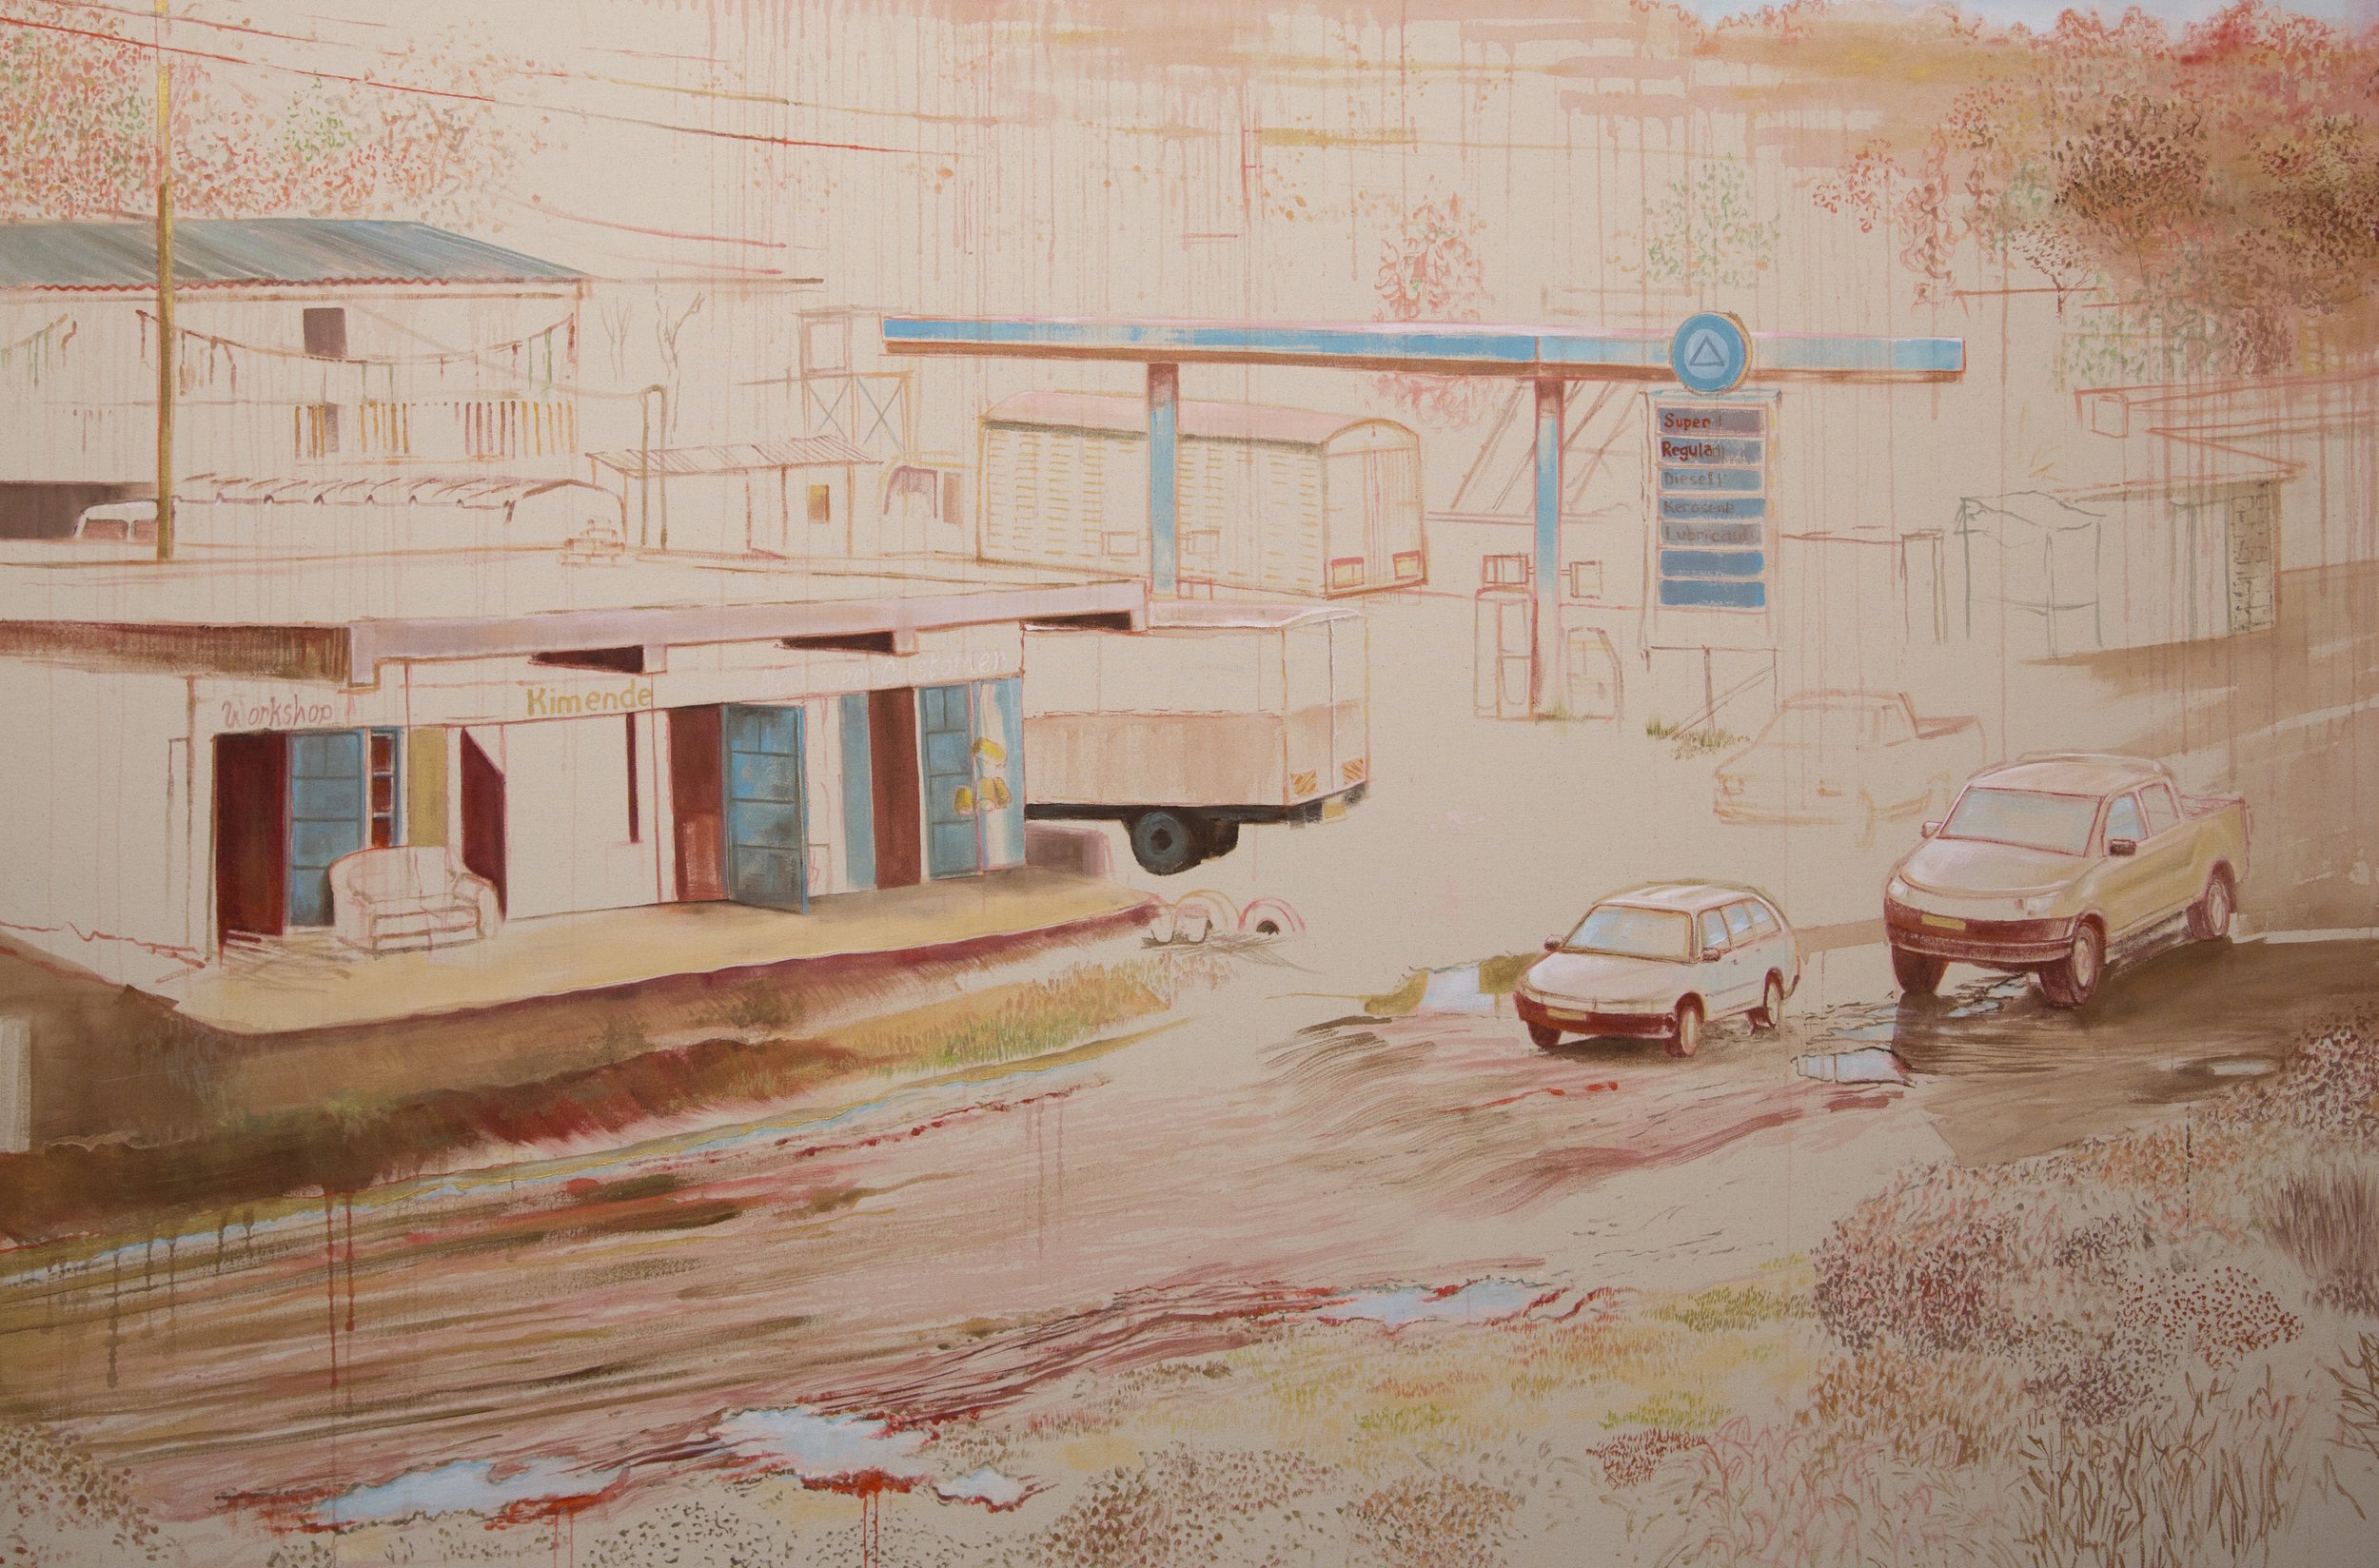 """Gas station in Kimende, 2016, oil on canvas, 48"""" x 72"""""""